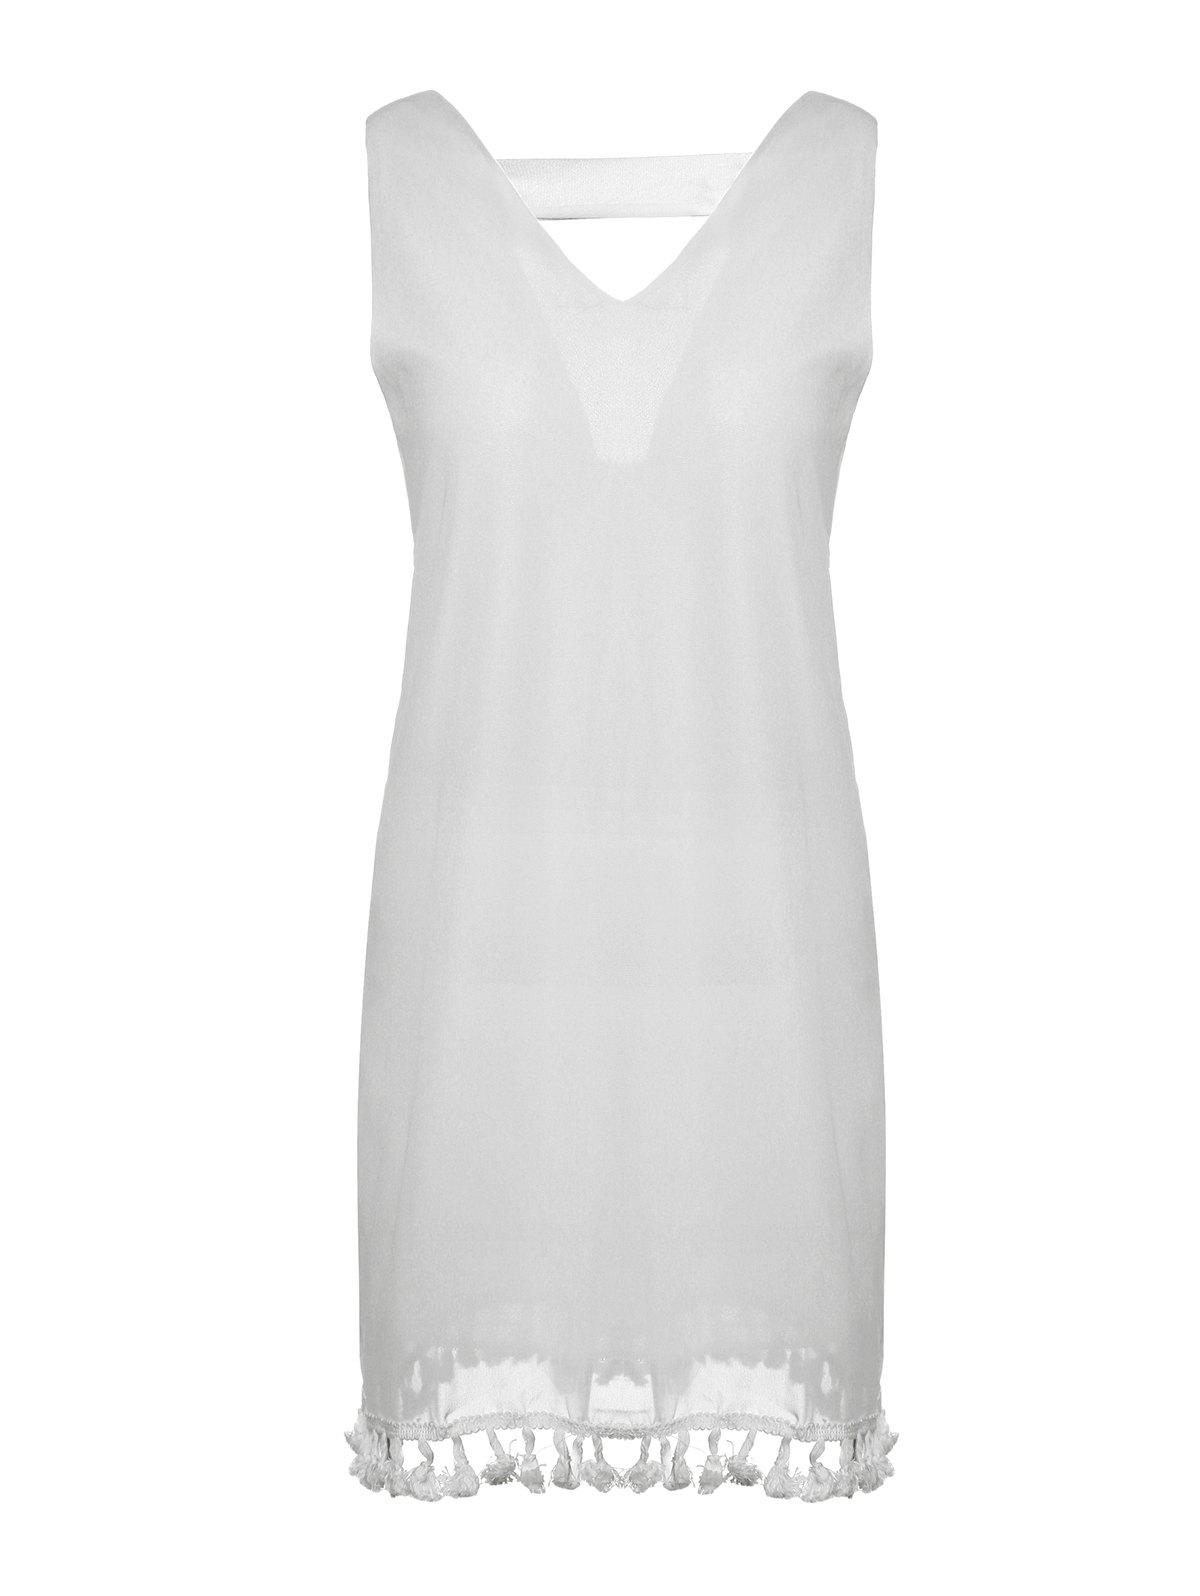 Sexy Women's V-Neck Sleeveless Fringed Cut Out Chiffon Dress - WHITE XL